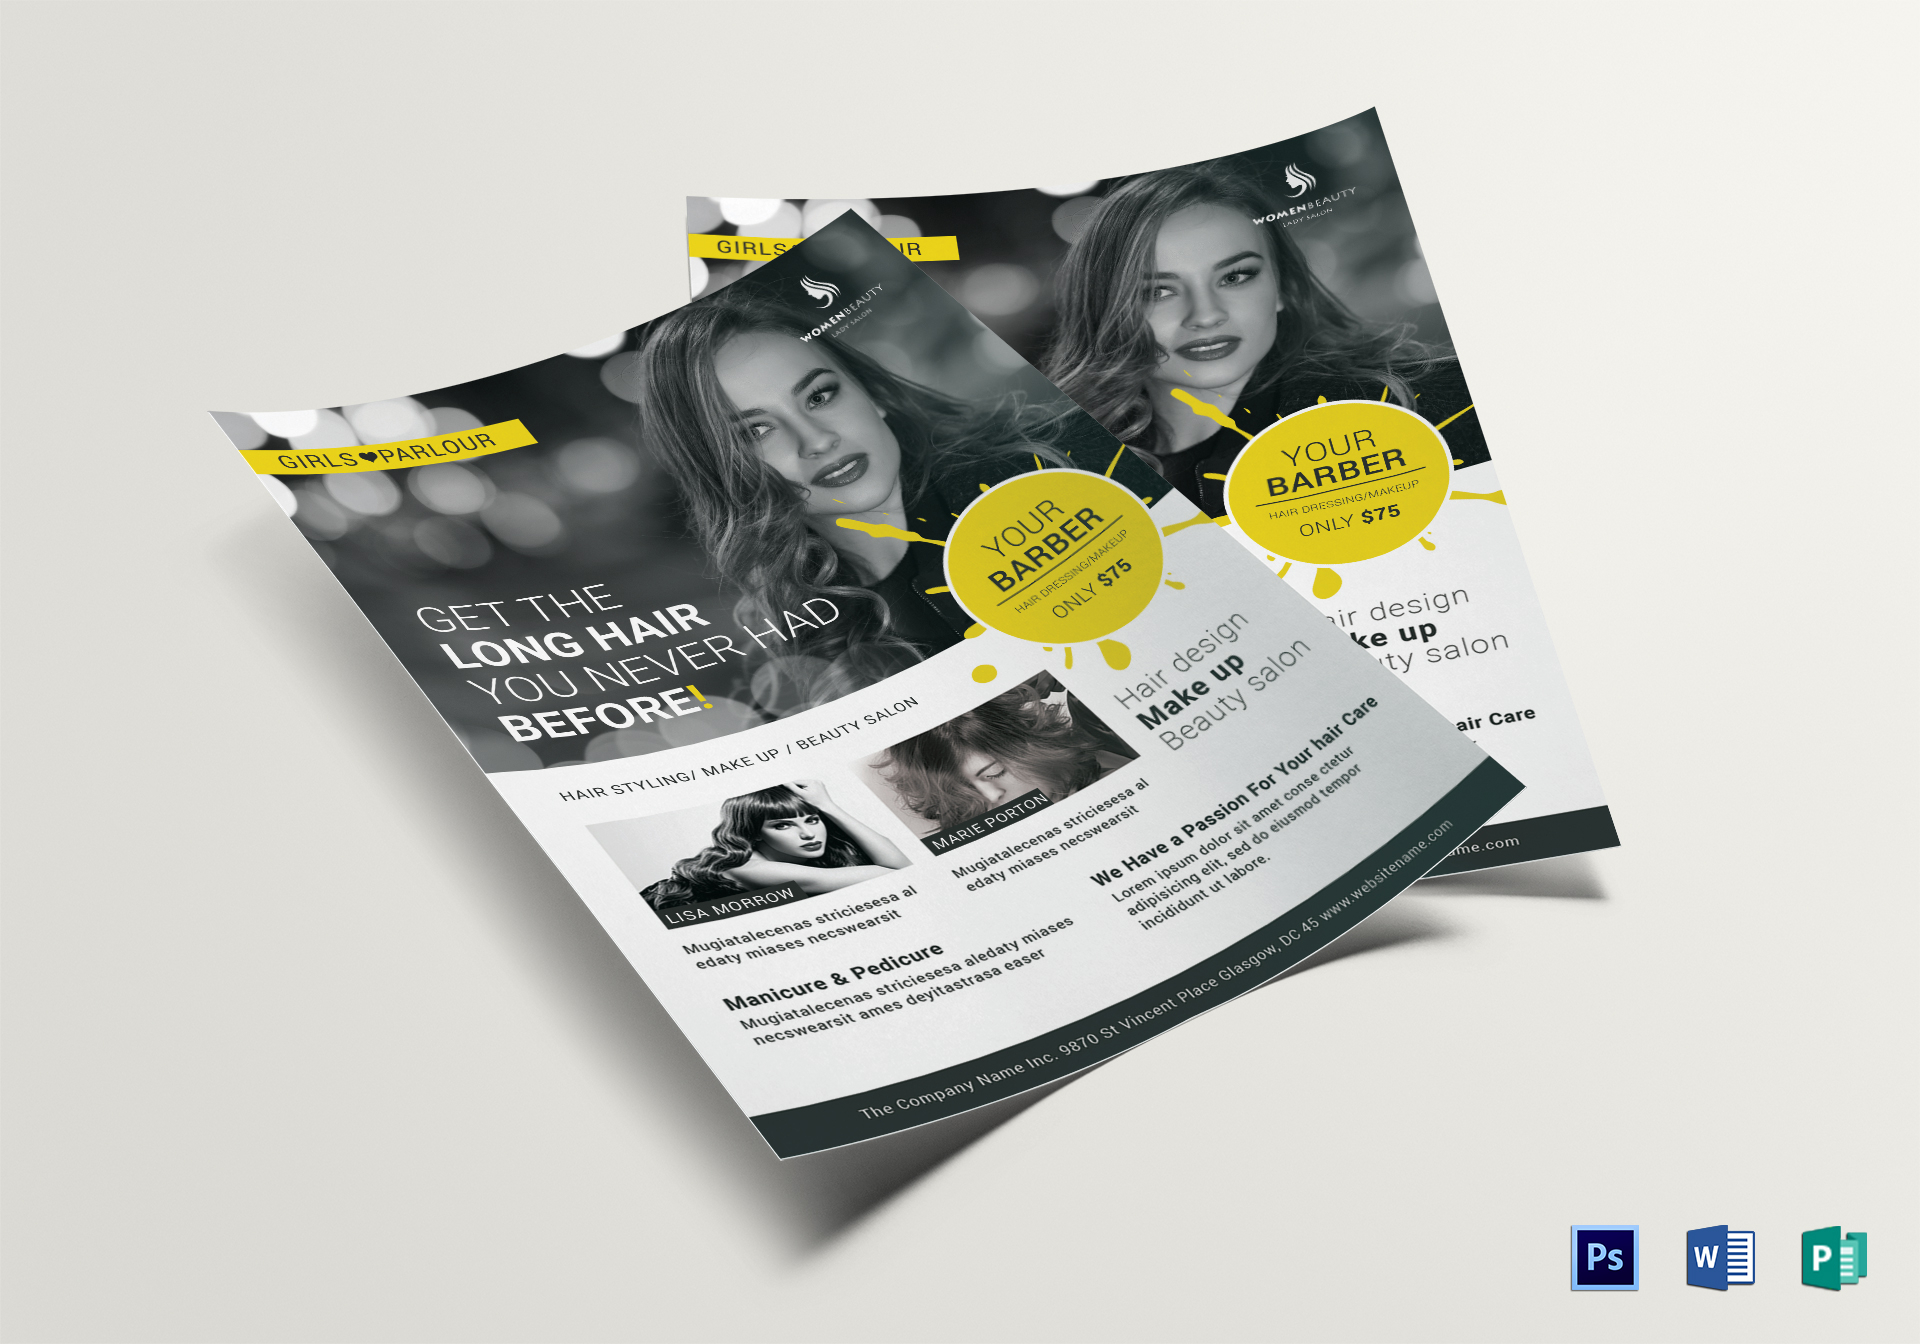 Beauty Barber Flyer Design Template in PSD, Word, Publisher